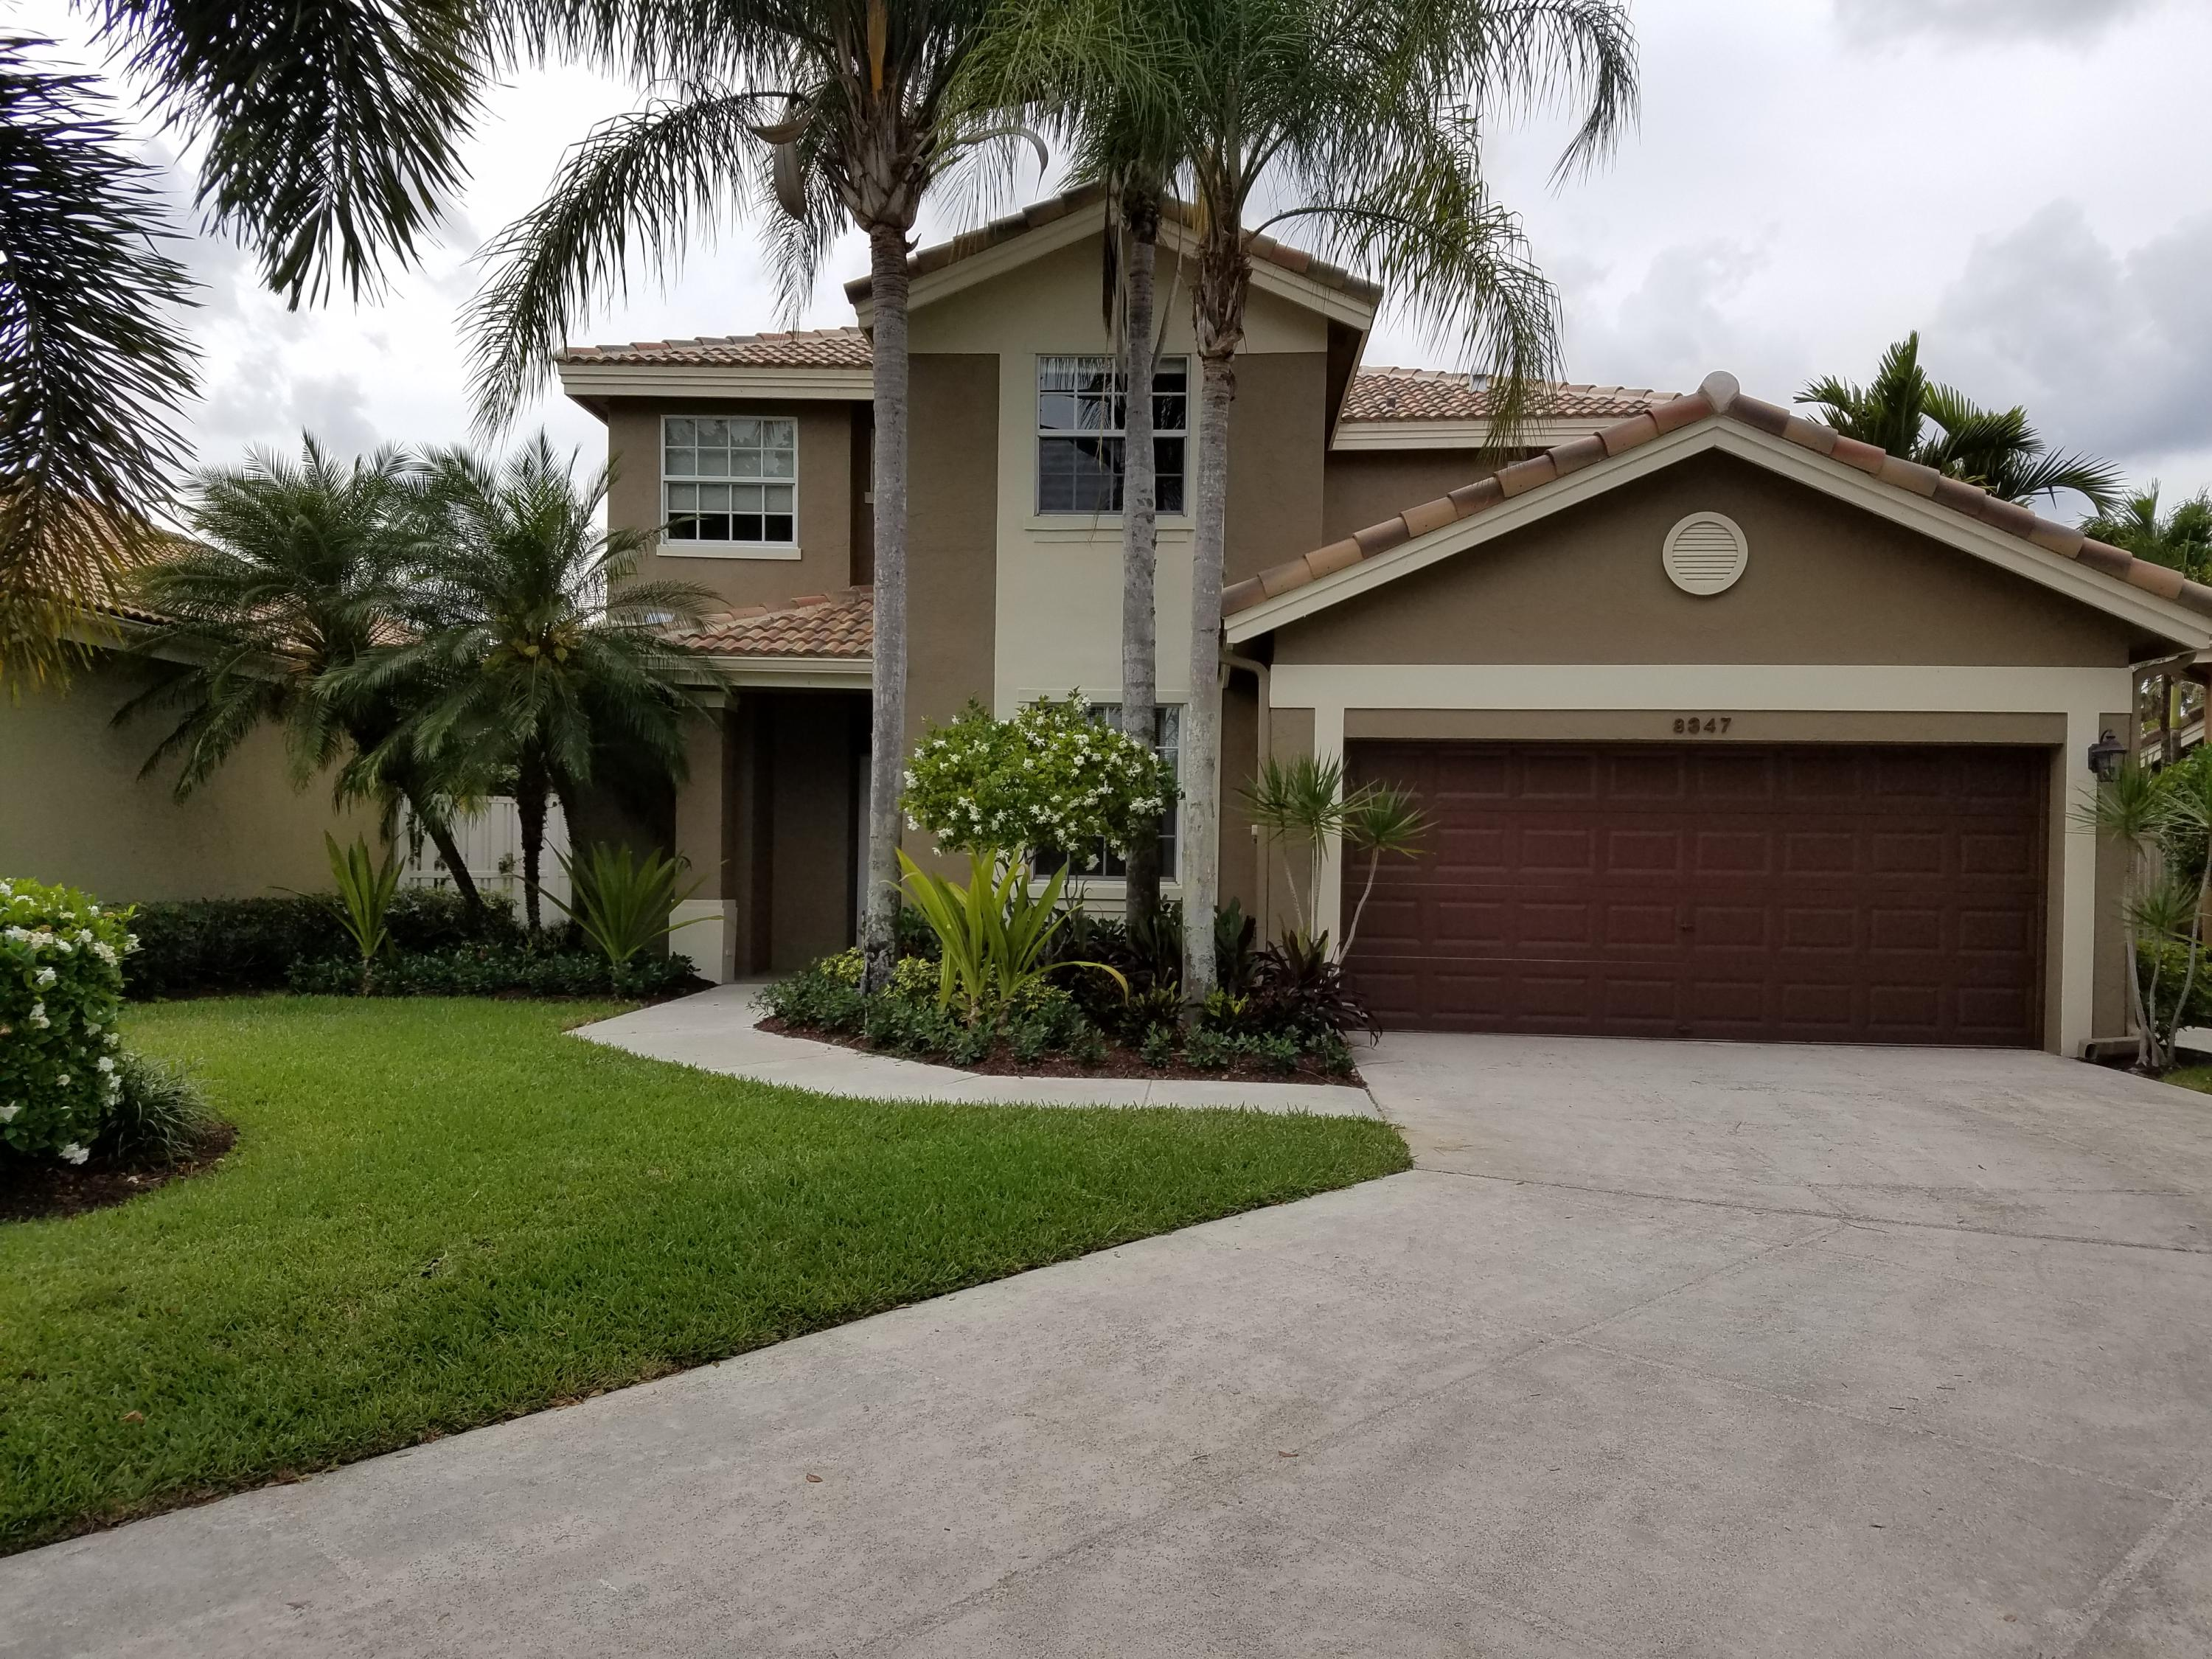 West Palm Beach, Florida 33412, 3 Bedrooms Bedrooms, ,2.1 BathroomsBathrooms,Single Family,For Rent,Quail Meadow,2,RX-10524930